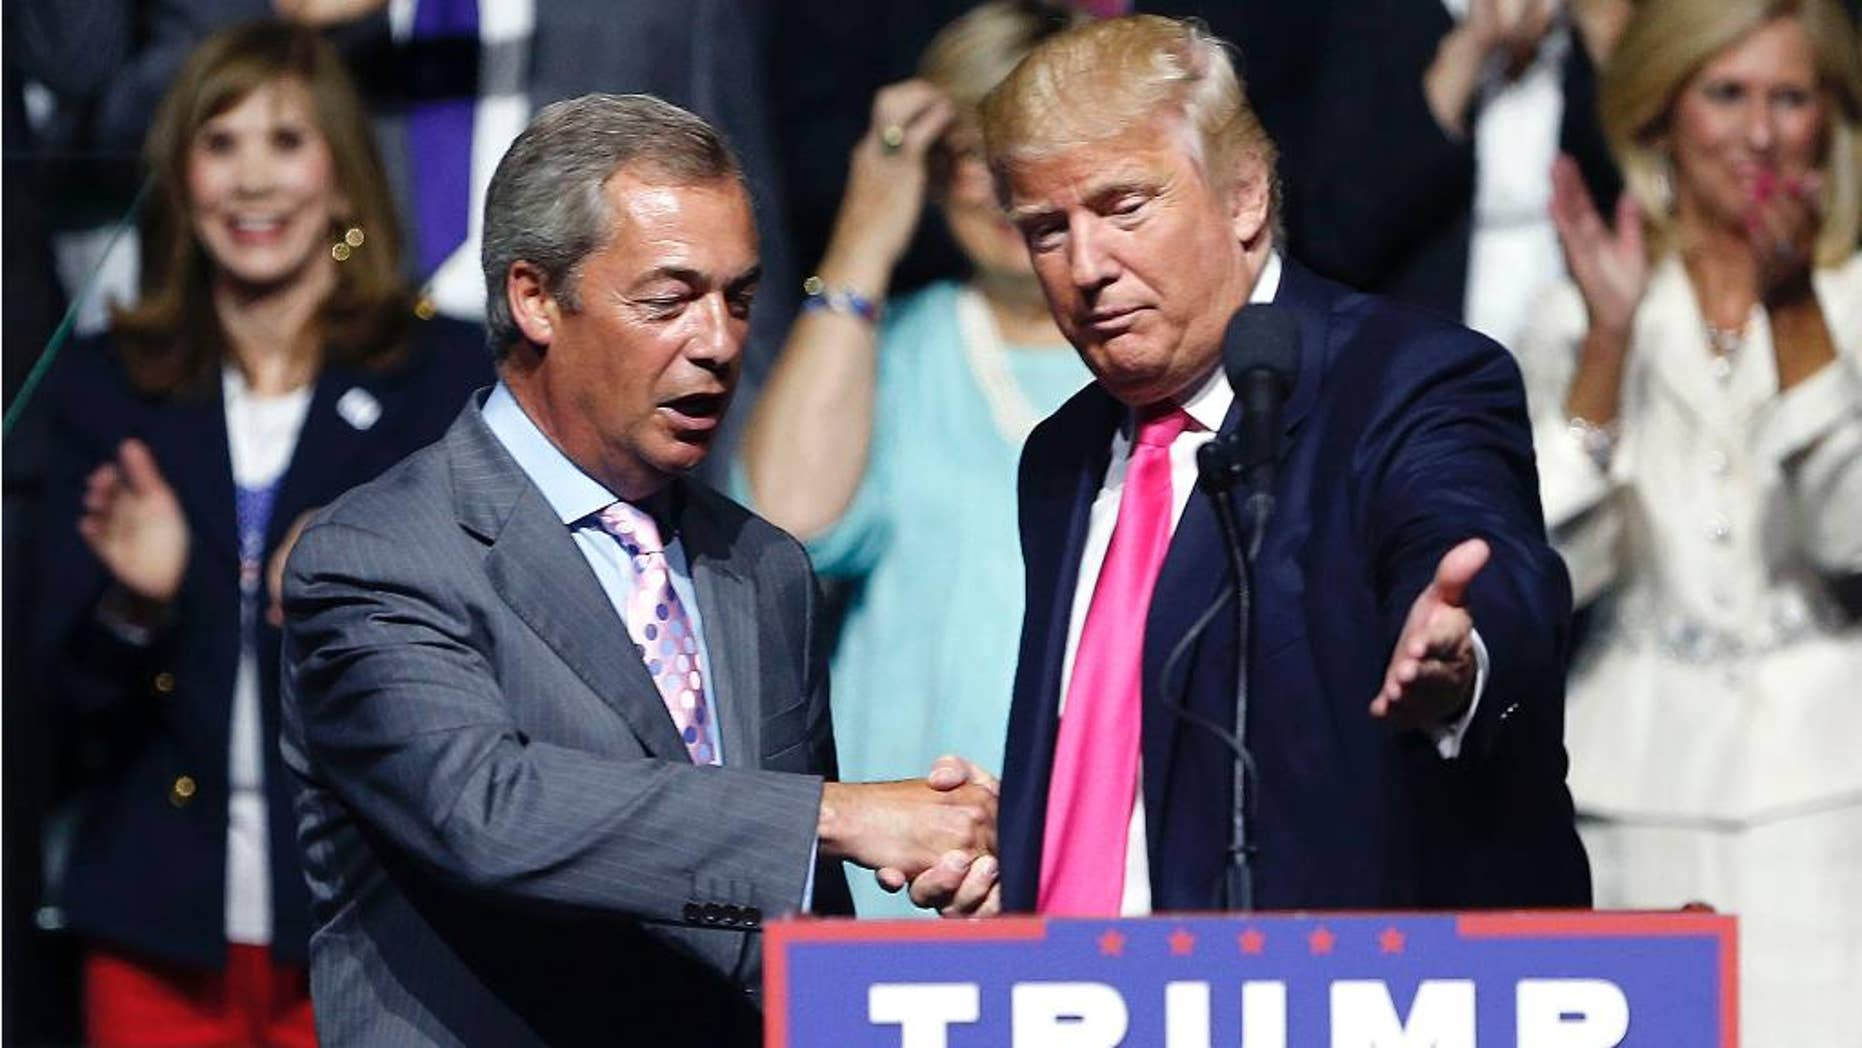 """FILE - In this is a Wednesday, Aug. 24, 2016 file photo, Republican presidential candidate Donald Trump, right, welcomes pro-Brexit British politician Nigel Farage, to speak at a campaign rally in Jackson, Miss. Farage says he will attend Donald Trump's inauguration as U.S. president. Farage, one of Trump's strongest U.K. supporters, told Sky News that he had been invited by Mississippi Gov. Phil Bryant. He called the Jan. 20 ceremony in Washington, DC """"a great, historic event"""" and Trump's election """"a political revolution."""" (AP Photo/Gerald Herbert, File)"""